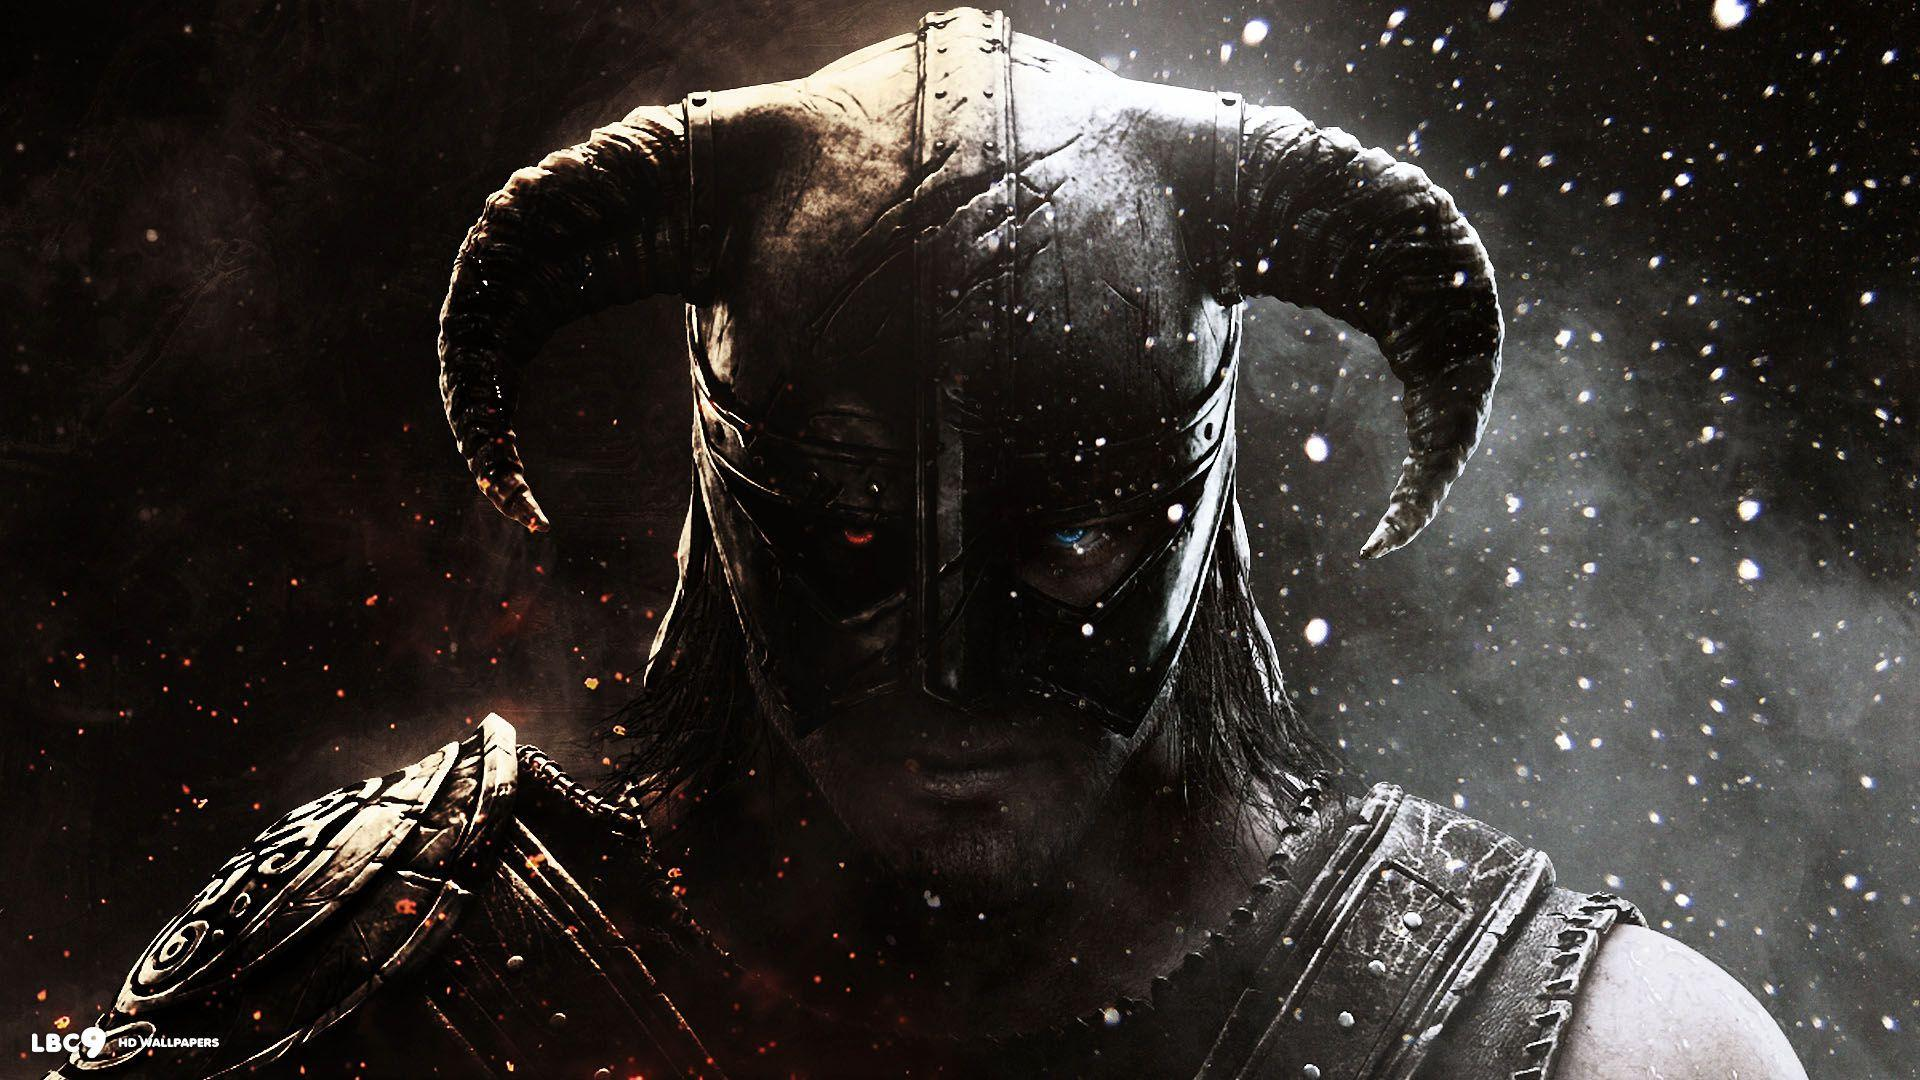 the elder scrolls v skyrim wallpaper 2/9 | role playing games hd ...